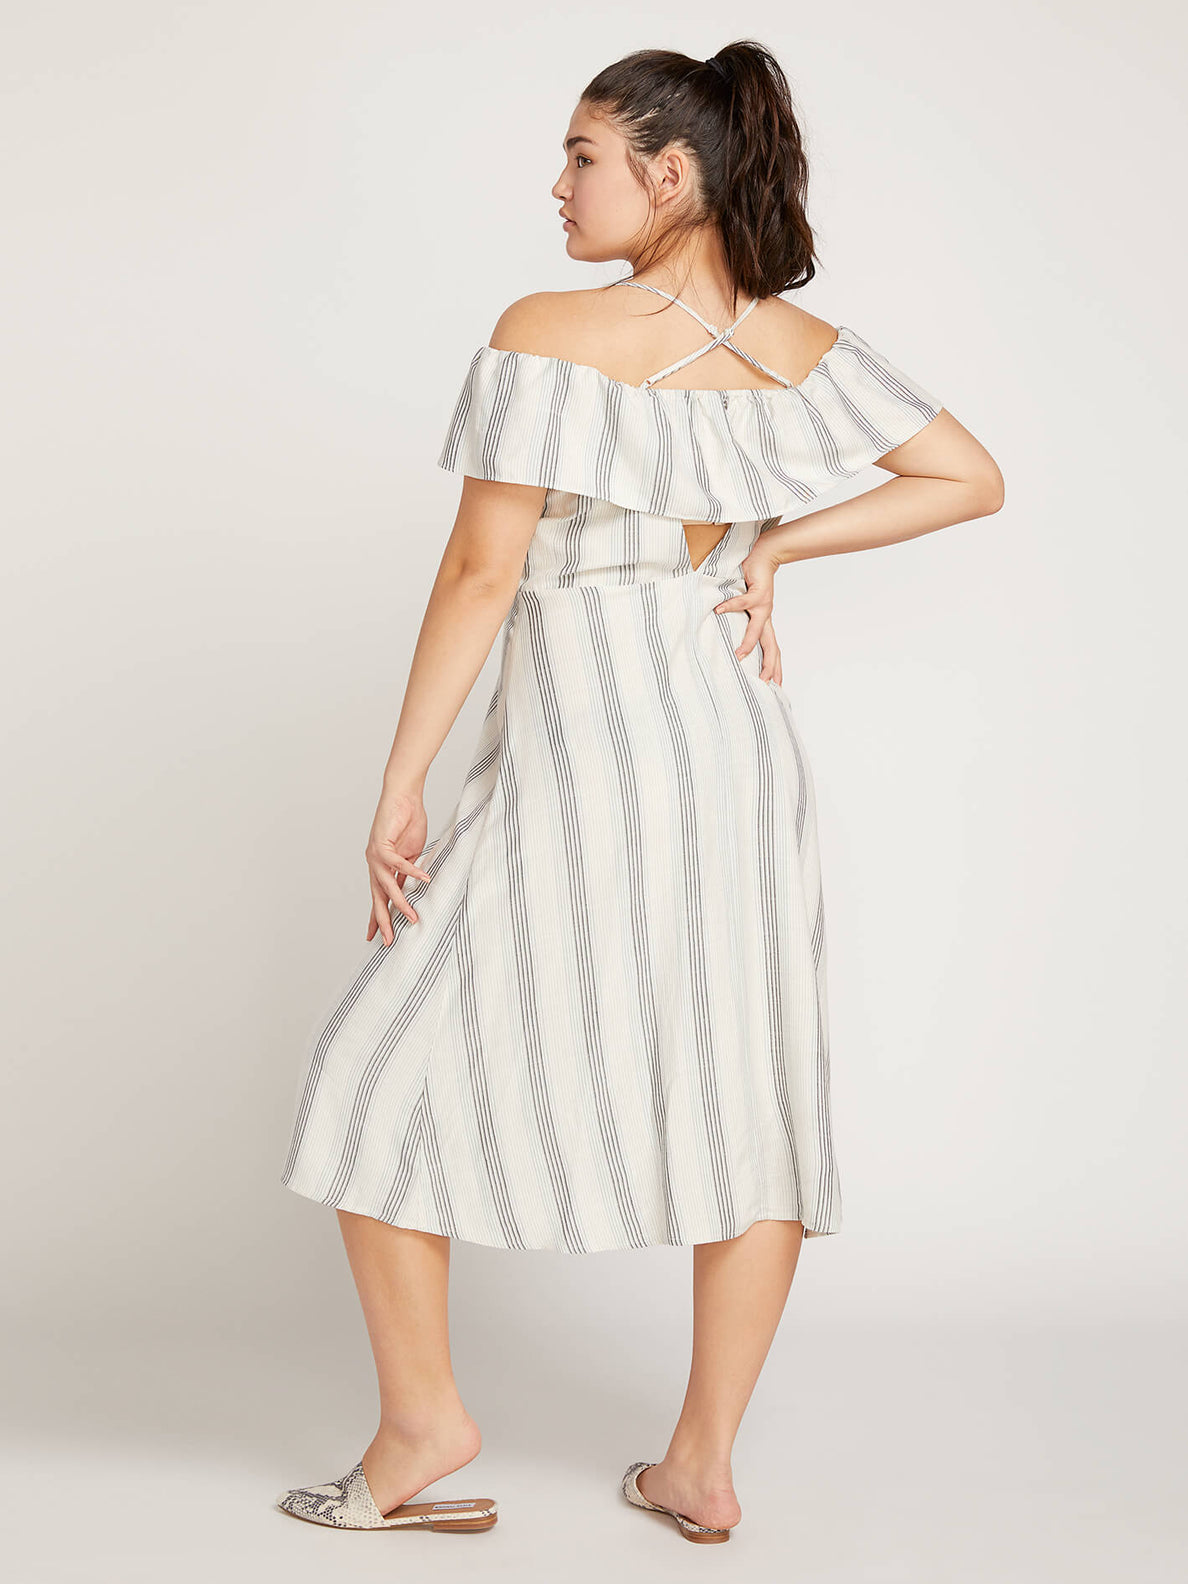 Winding Roads Dress In White Combo, Back Extended Size View